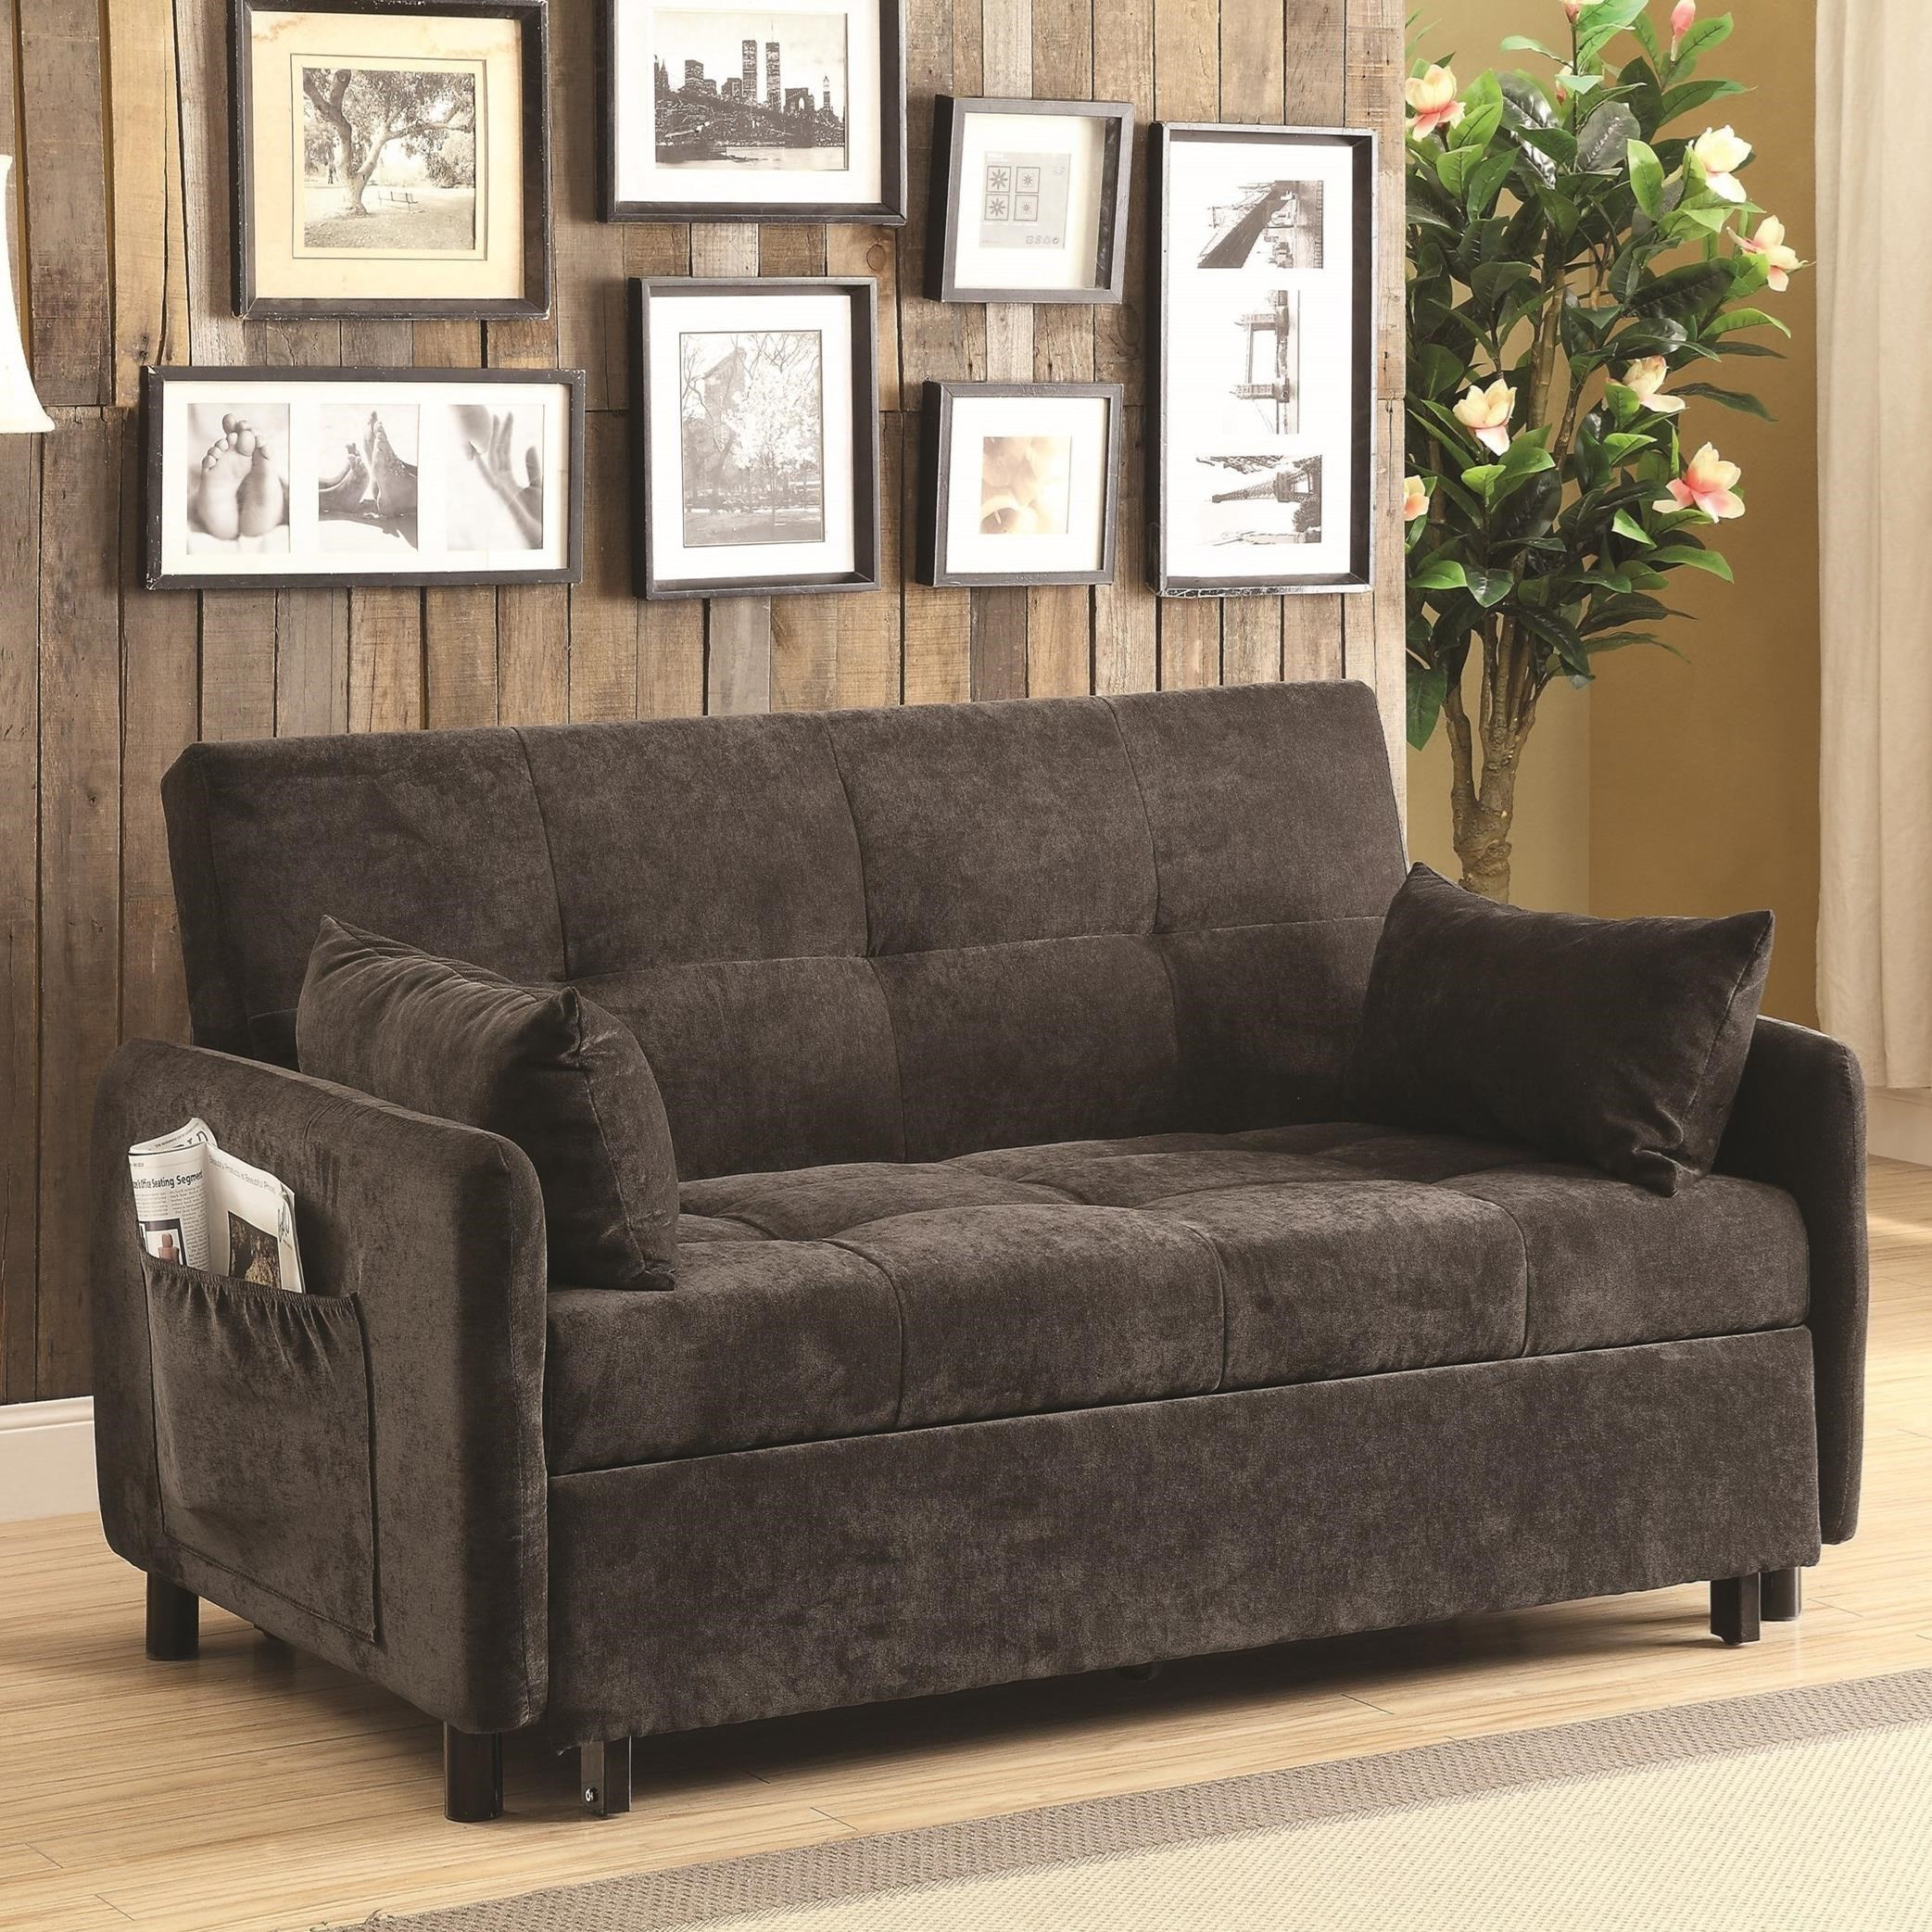 coaster futons 551075 dark brown sofa bed dunk bright furniture futons. Black Bedroom Furniture Sets. Home Design Ideas